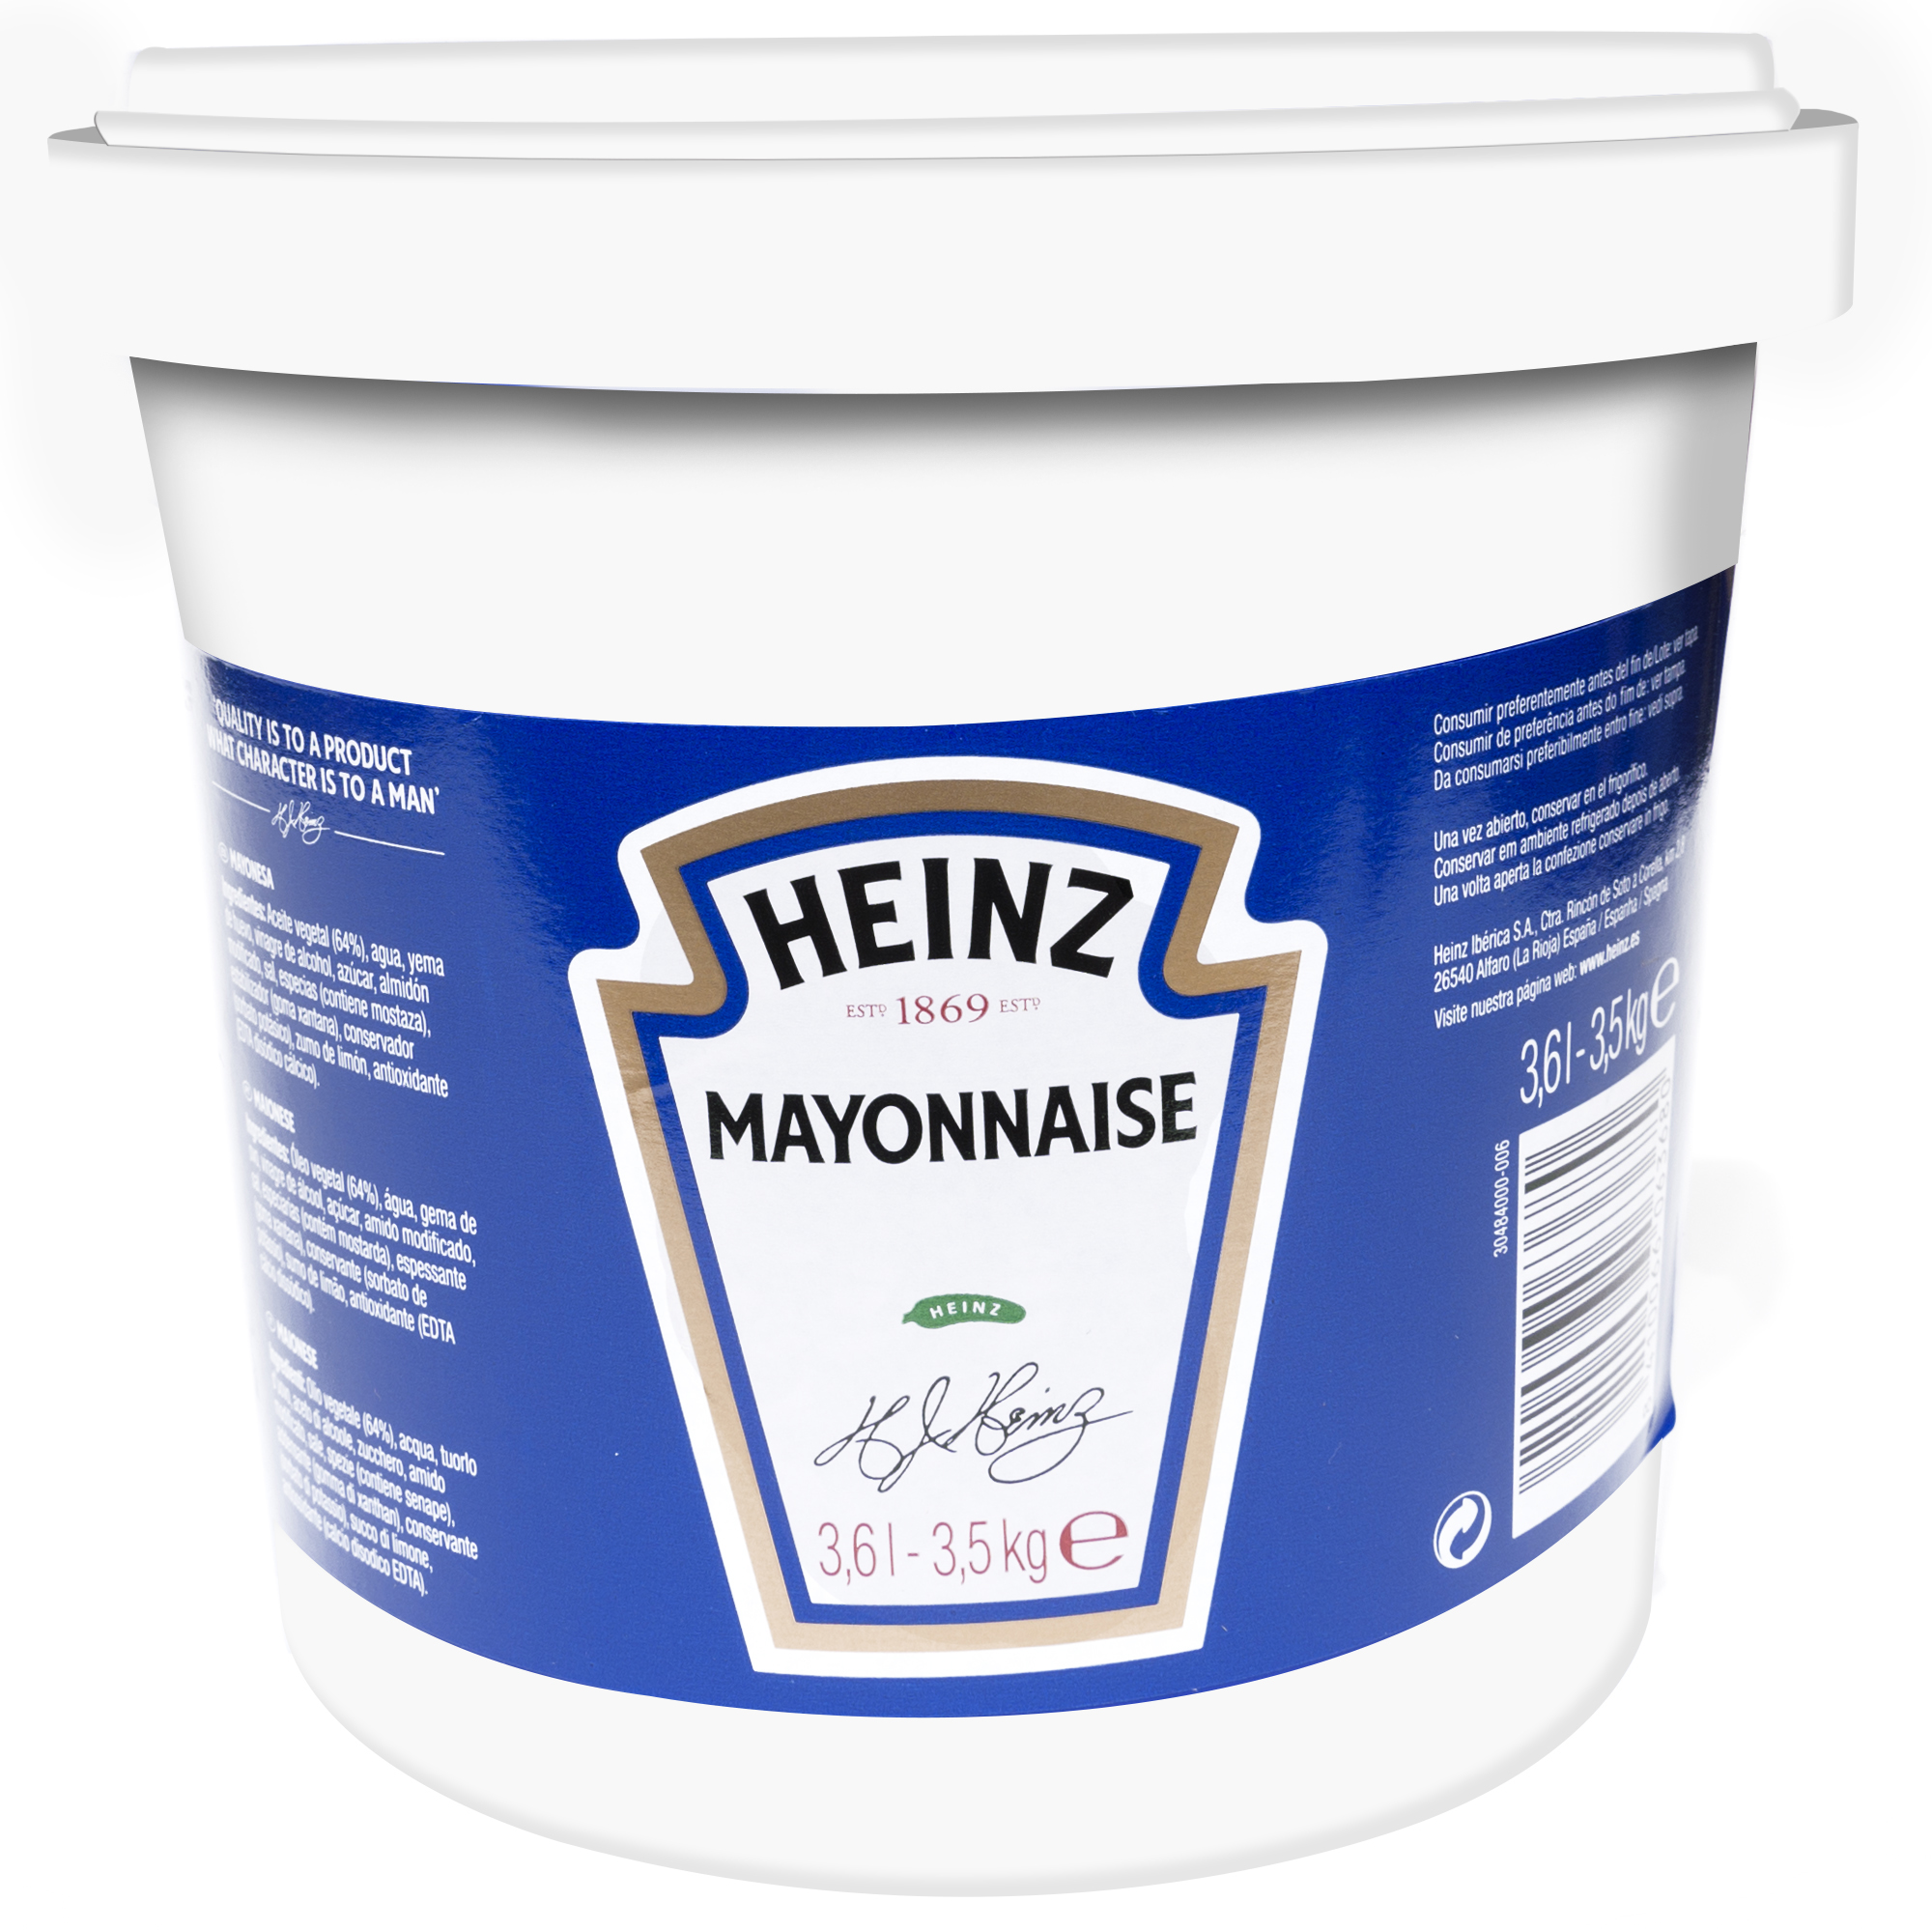 Heinz Mayonnaise 3.6L image